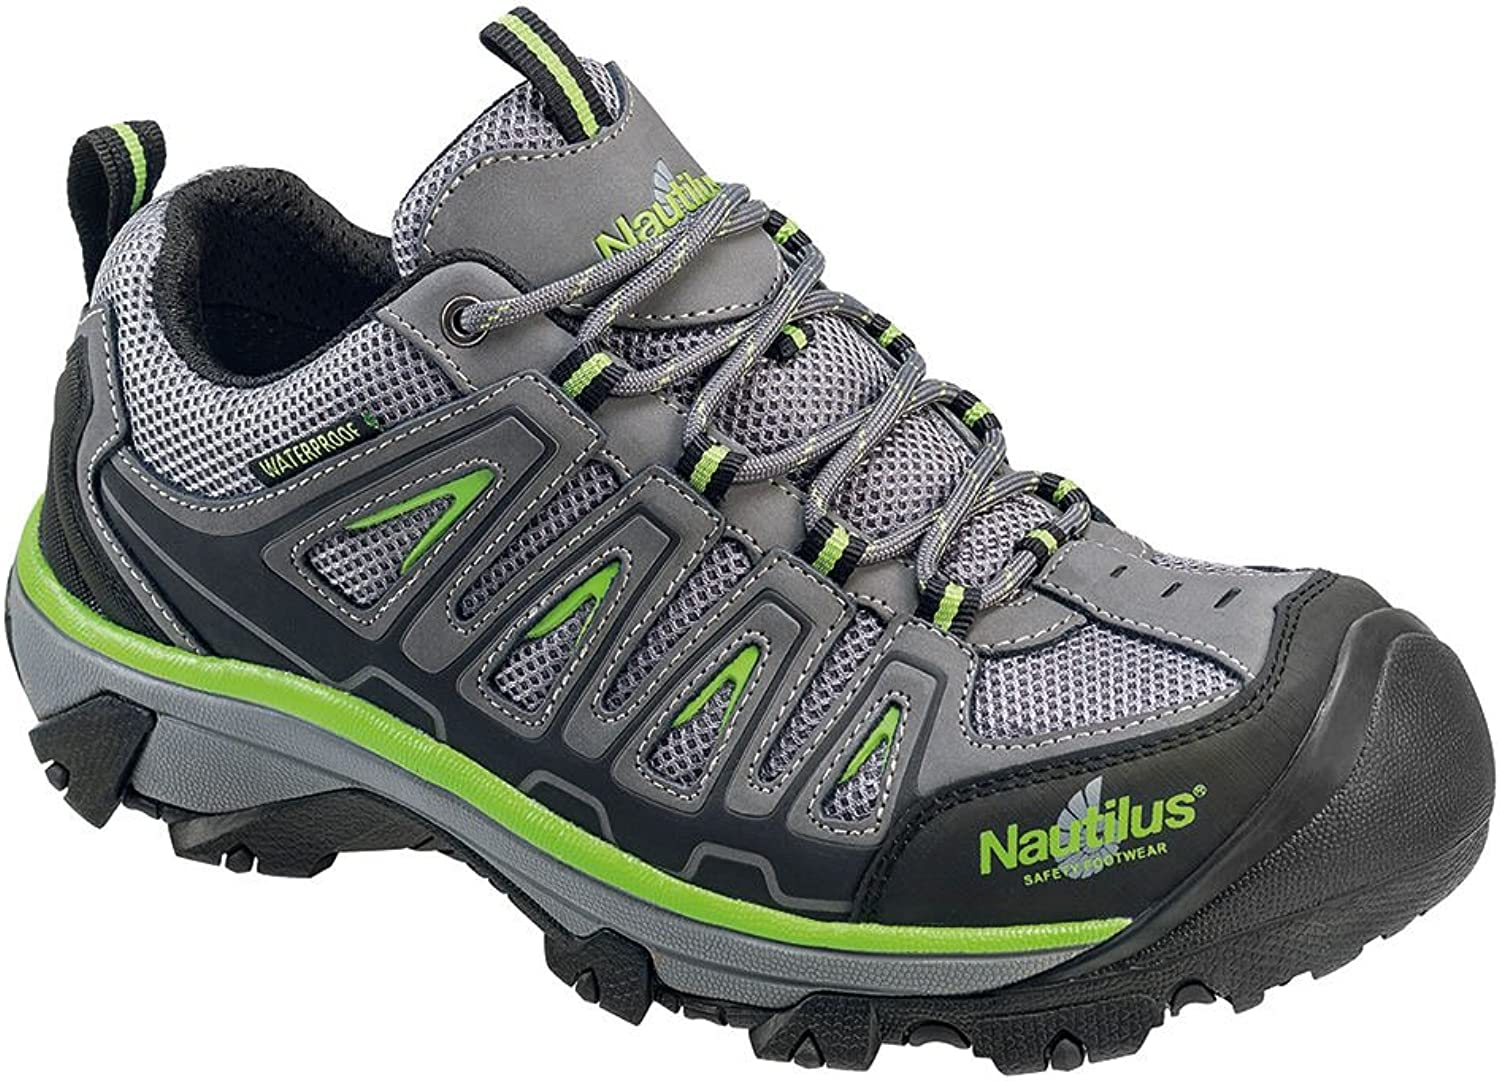 Nautilus 2208 Light Weight Low Waterproof Safety Toe EH Hiking shoes Grey